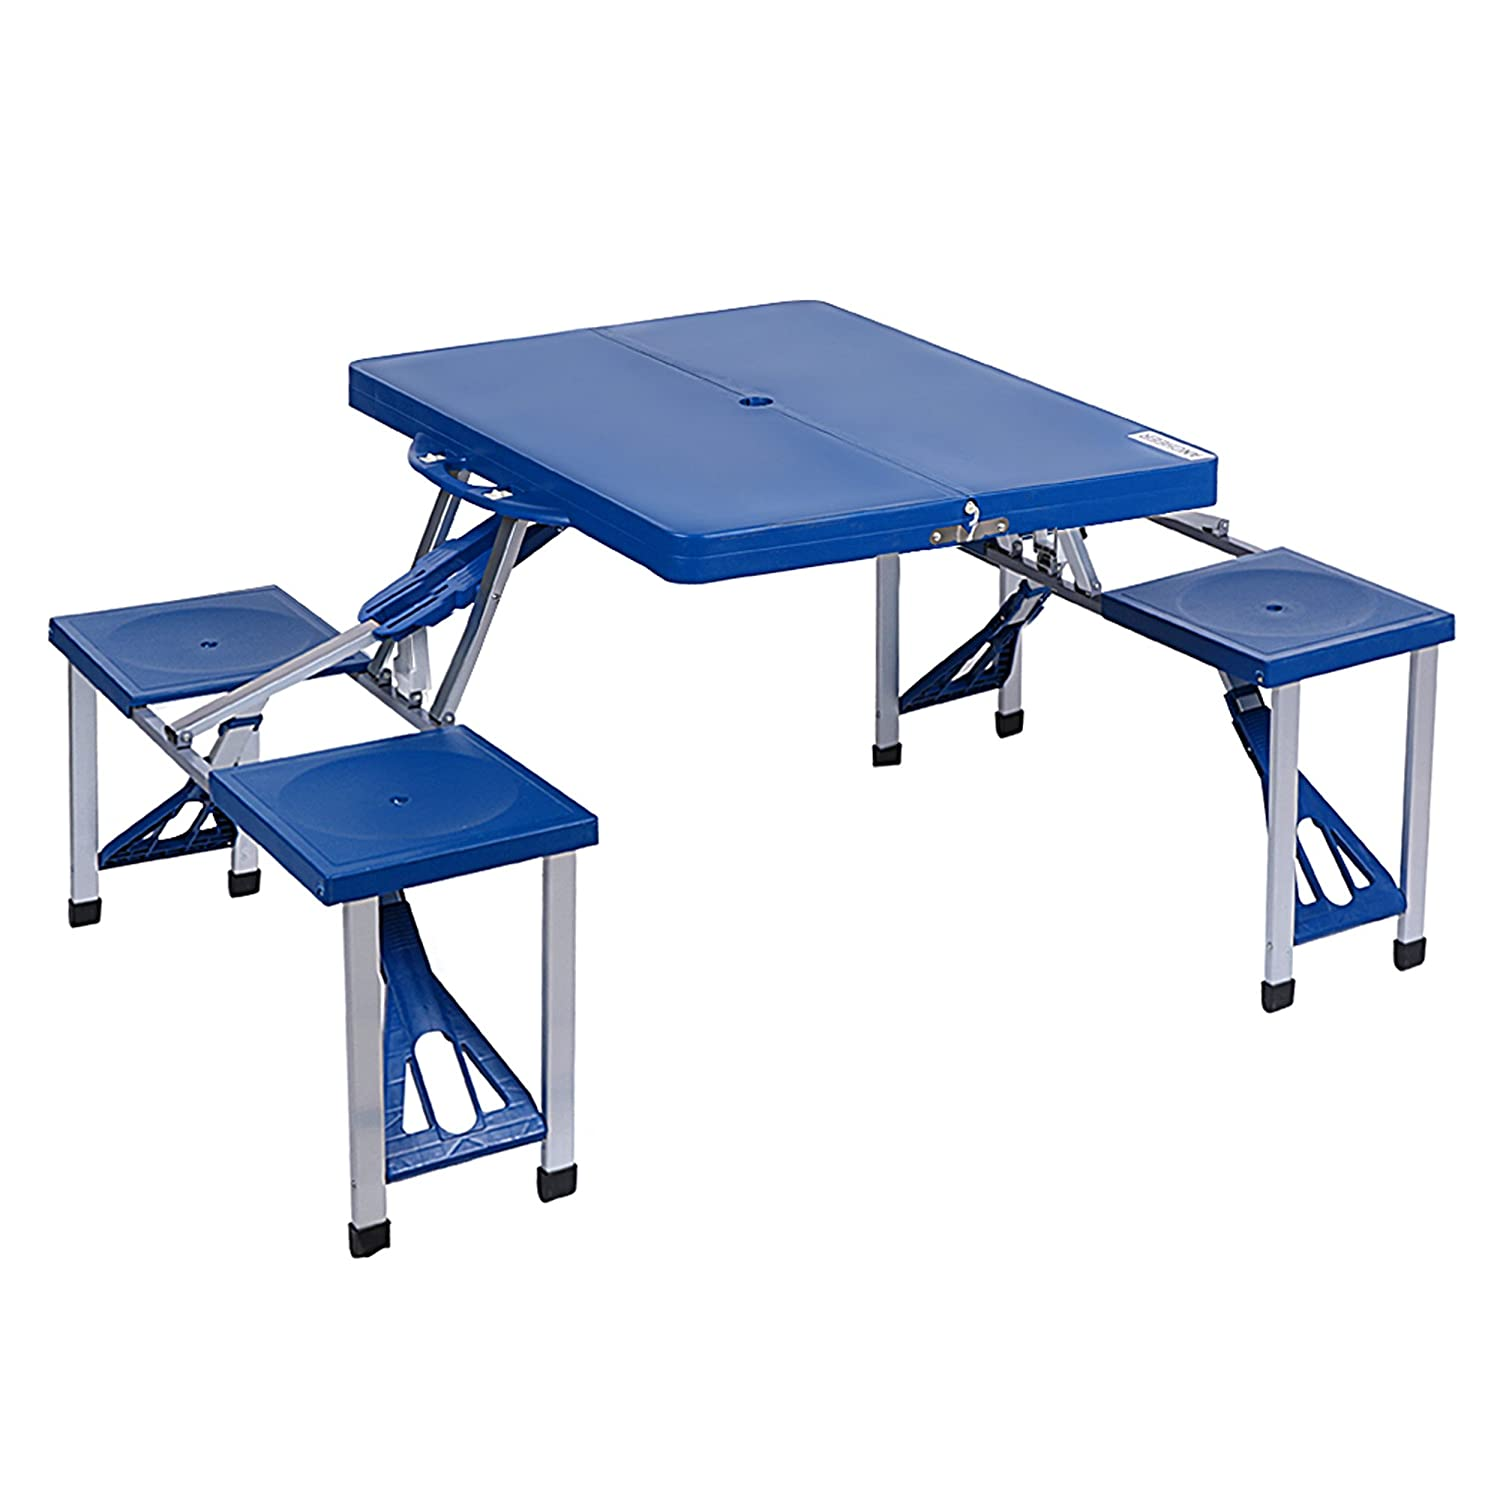 Amazon.com: Ancheer Portable Folding Camping Table, Plastic Outdoor ...